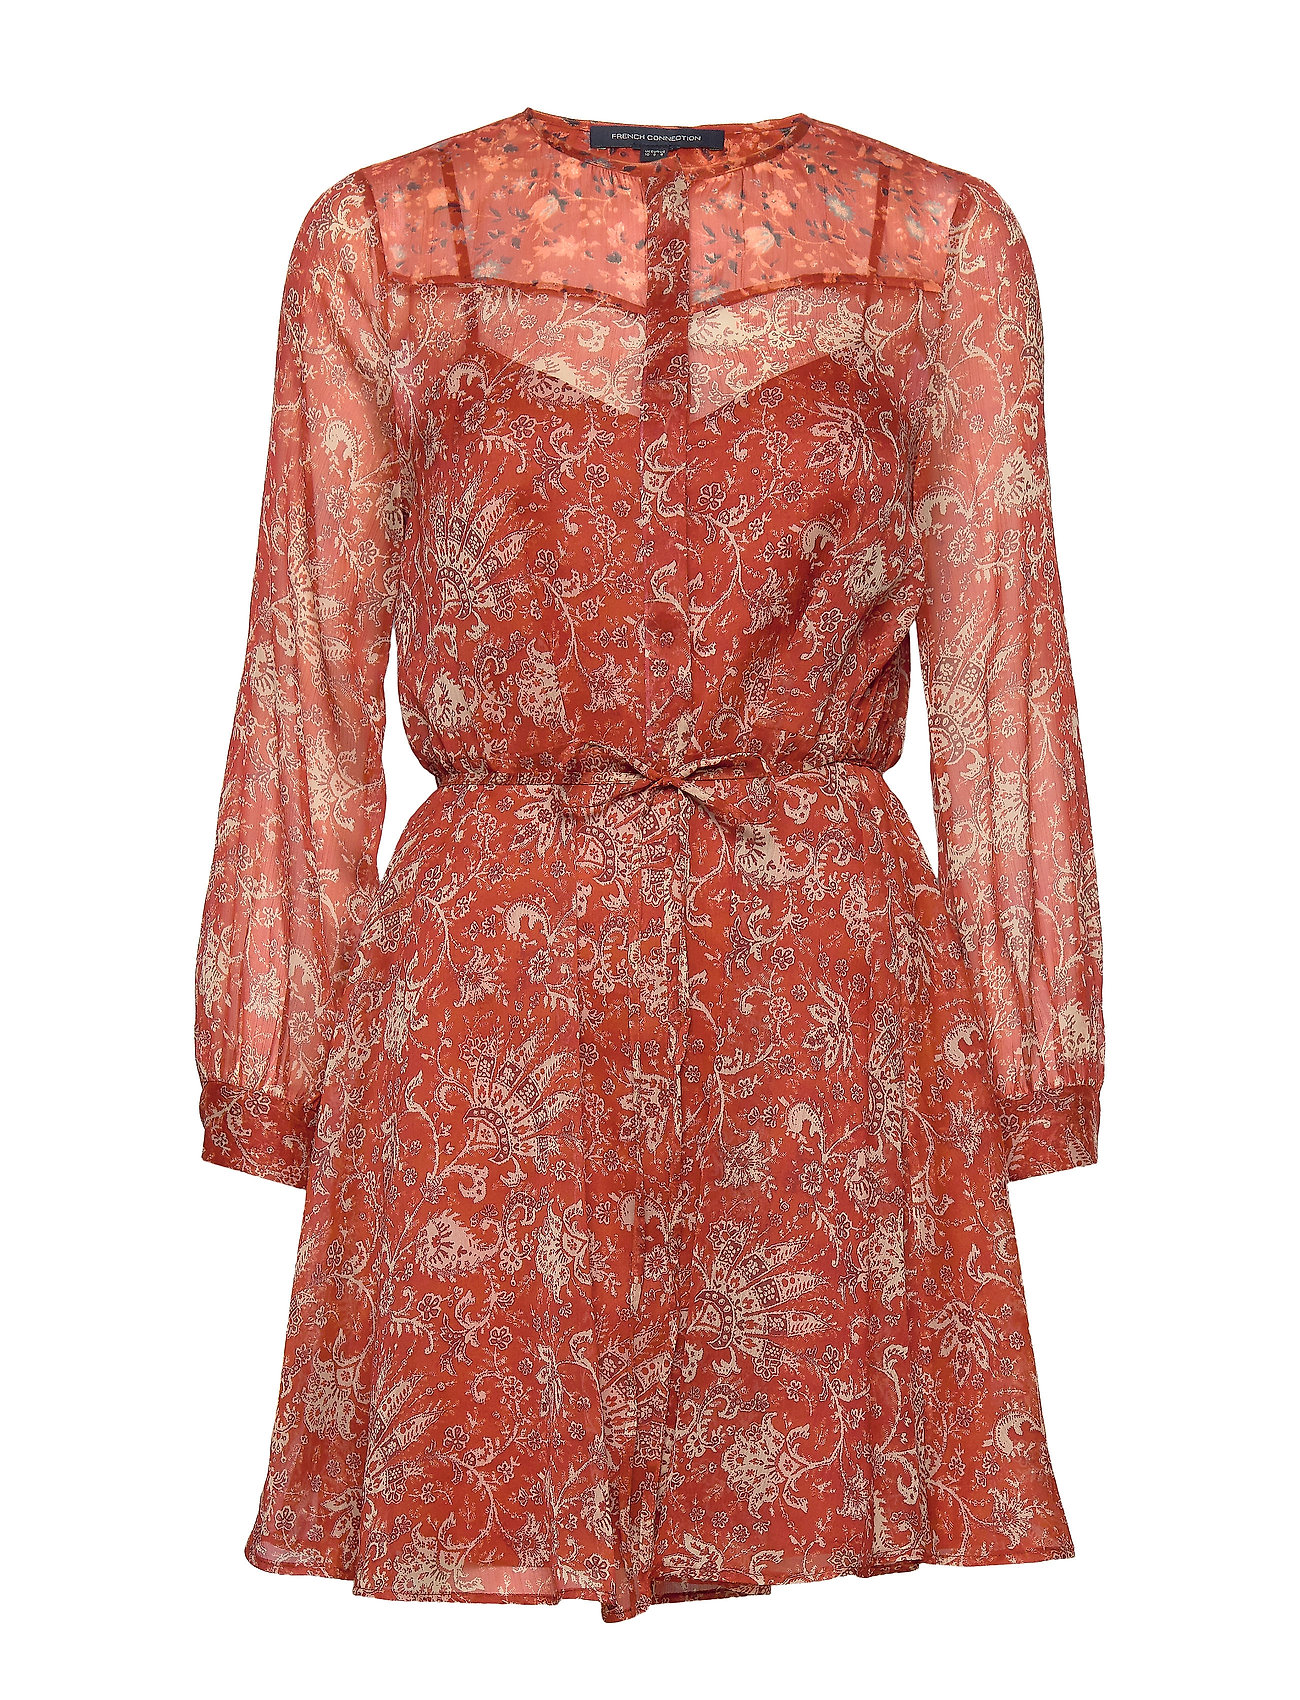 French Connection ESI CRINKLE PRINTED DRESS - RED OCHRE MULTI